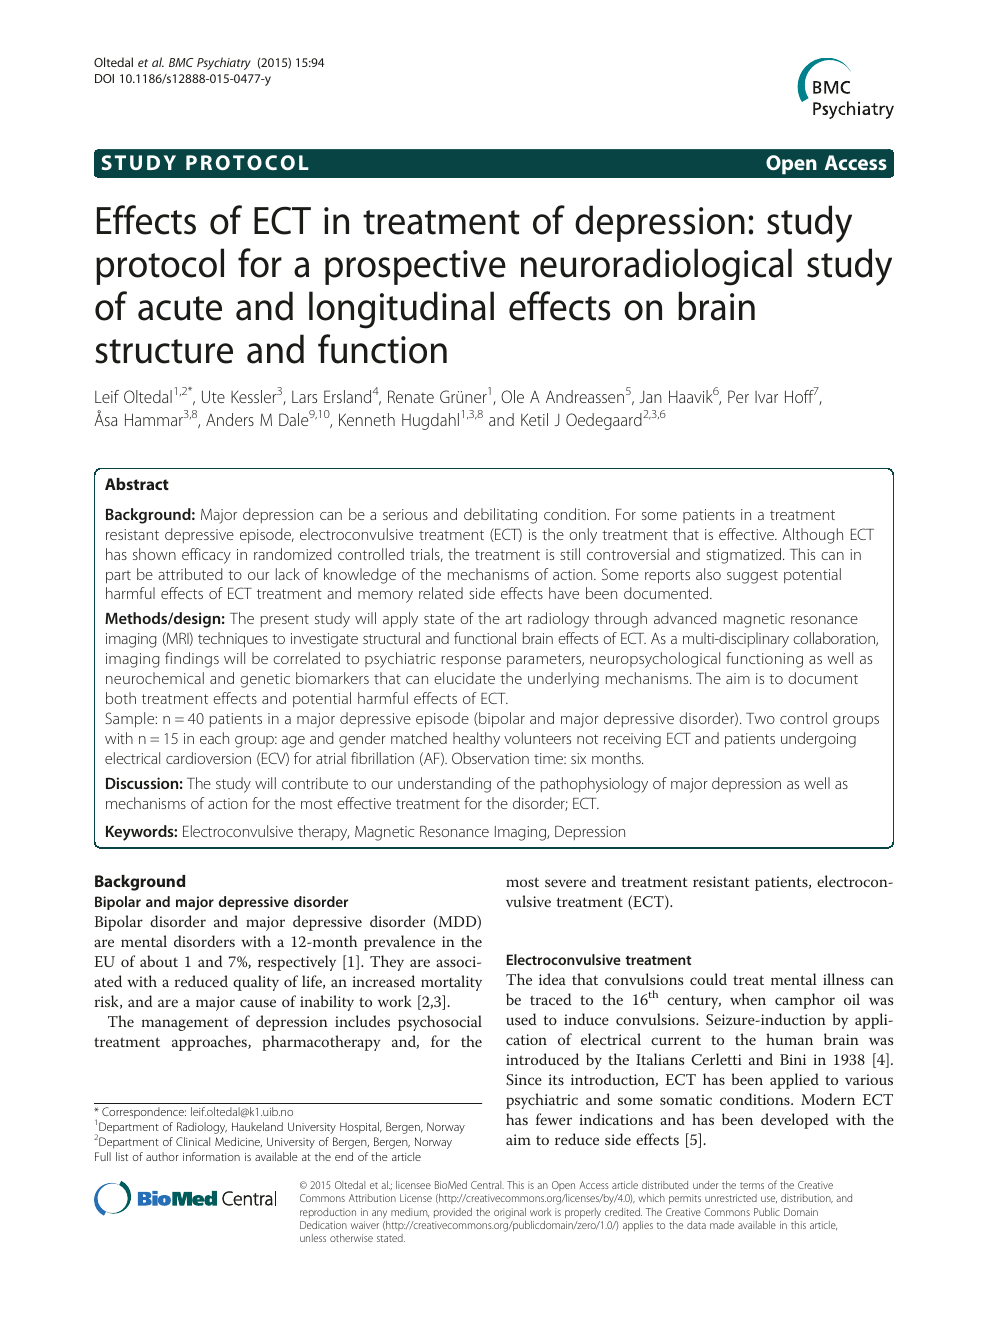 Effects of ECT in treatment of depression: study protocol for a prospective  neuroradiological study of acute and longitudinal effects on brain  structure and function – topic of research paper in Clinical medicine.